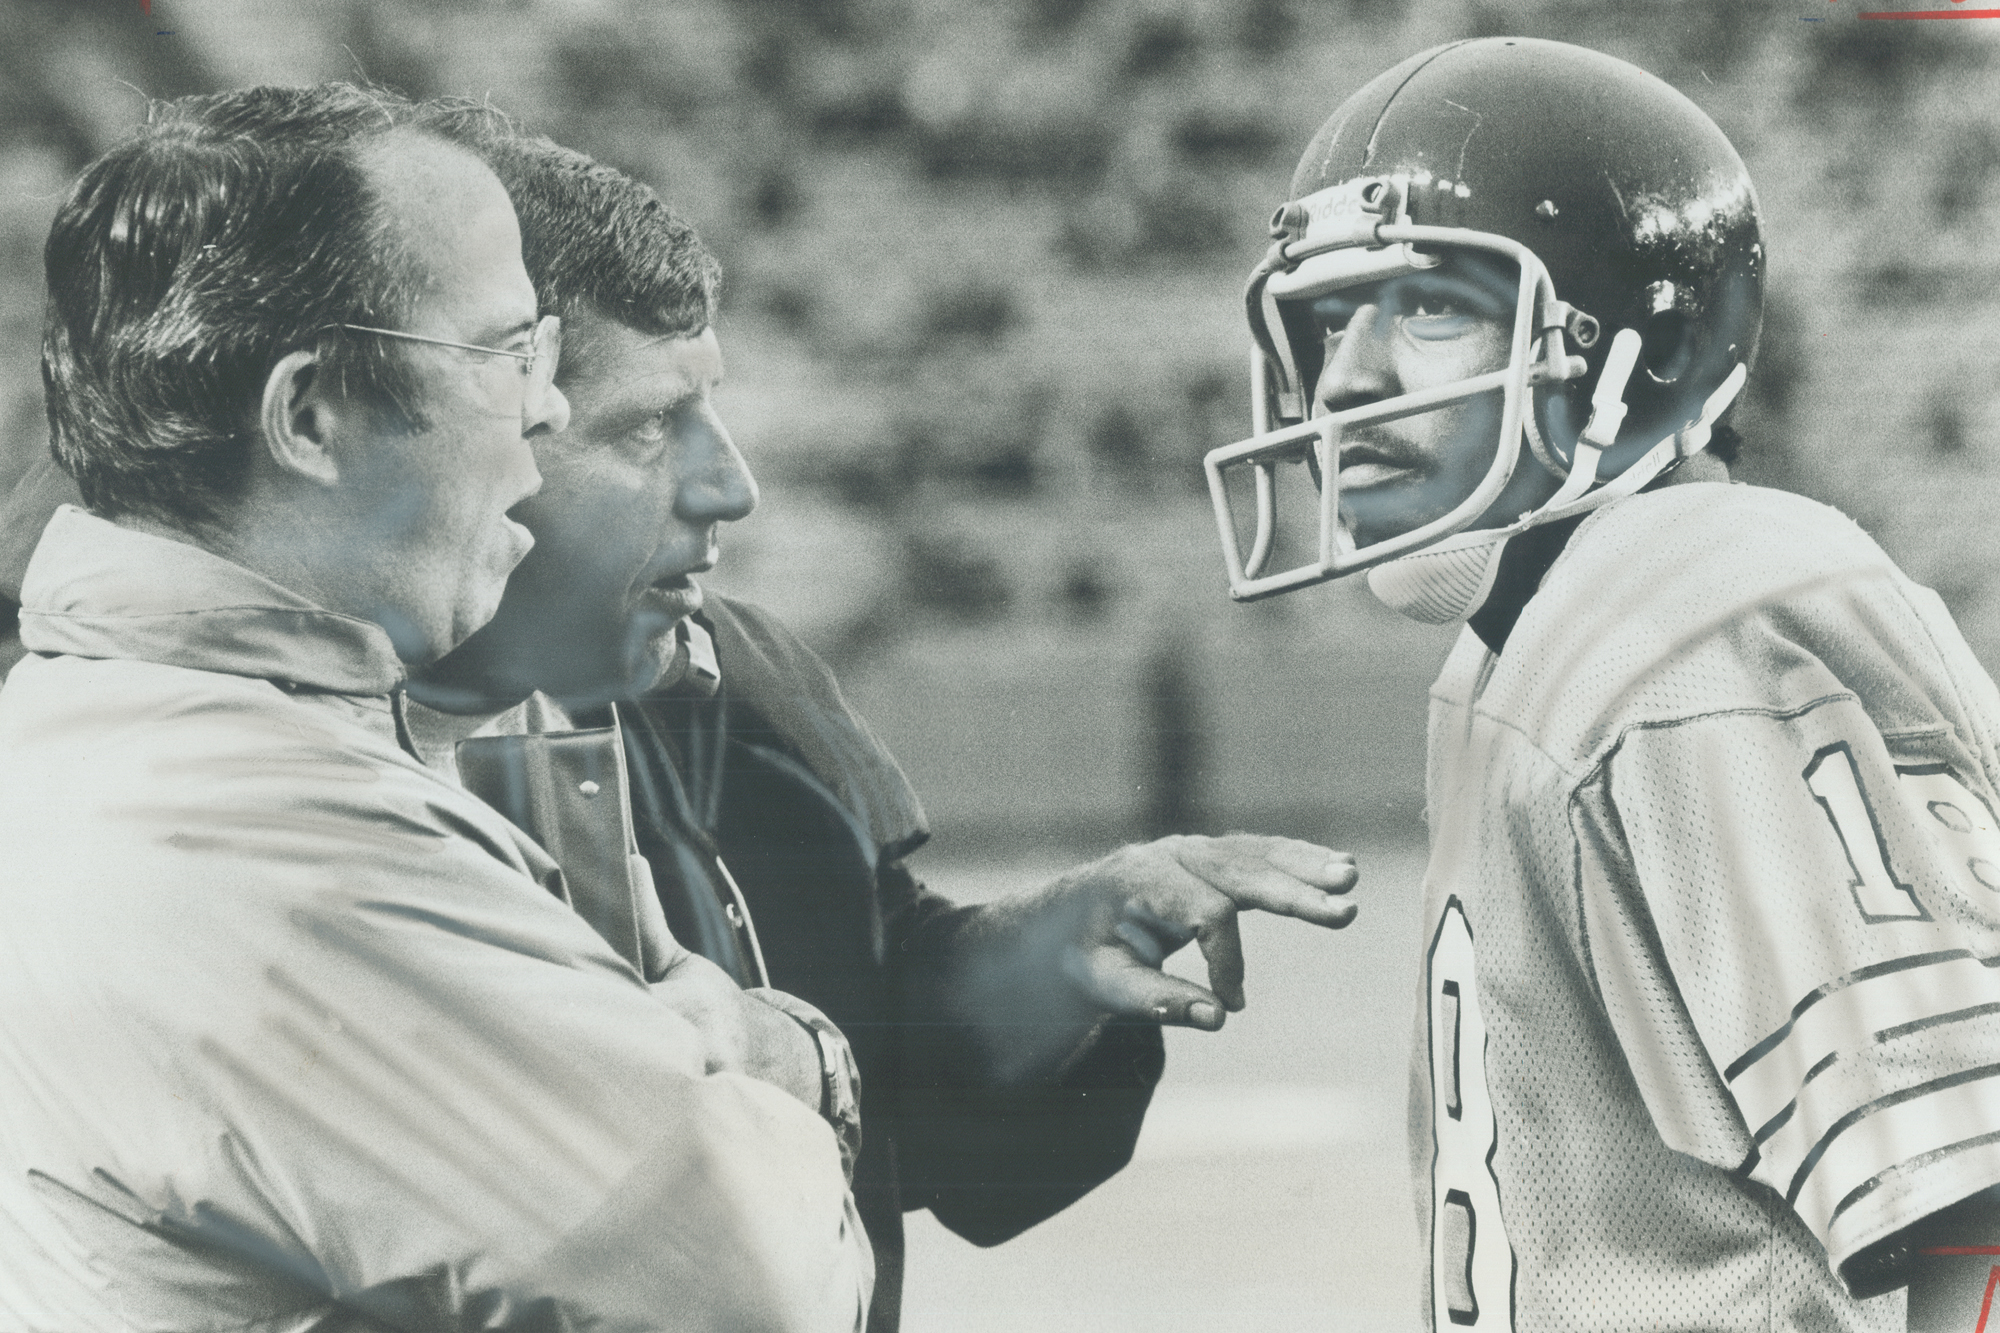 Toronto Argonaut head coach Leo Cahill (1) and assistant coach Chuck Dickerson (middle) speak with quarterback Chuck Ealey during final exhibition game against Ottawa Rough Riders.